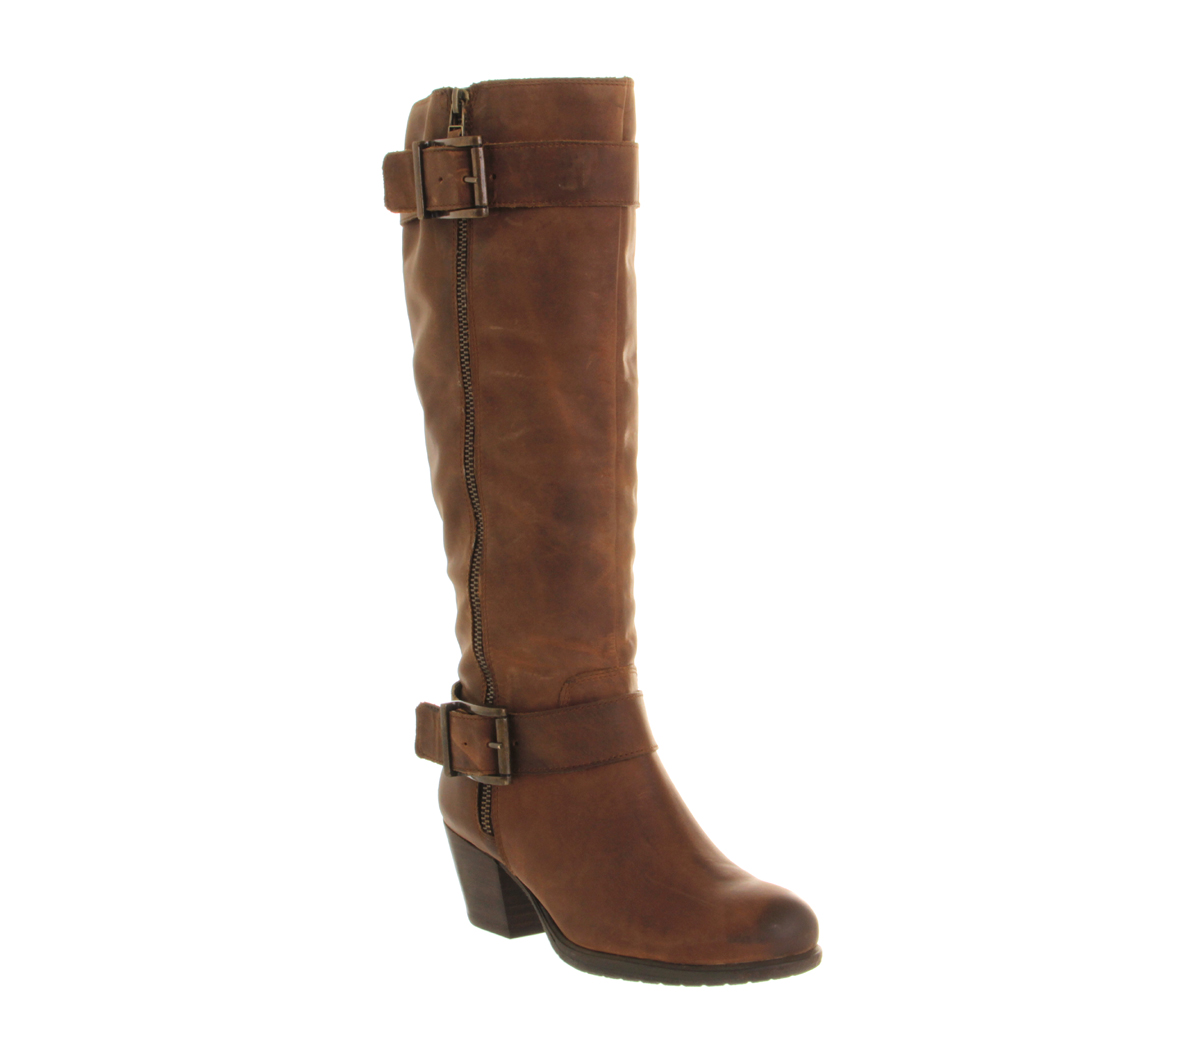 Womens Office Agenda Zip BROWN LEATHER Boots | eBay